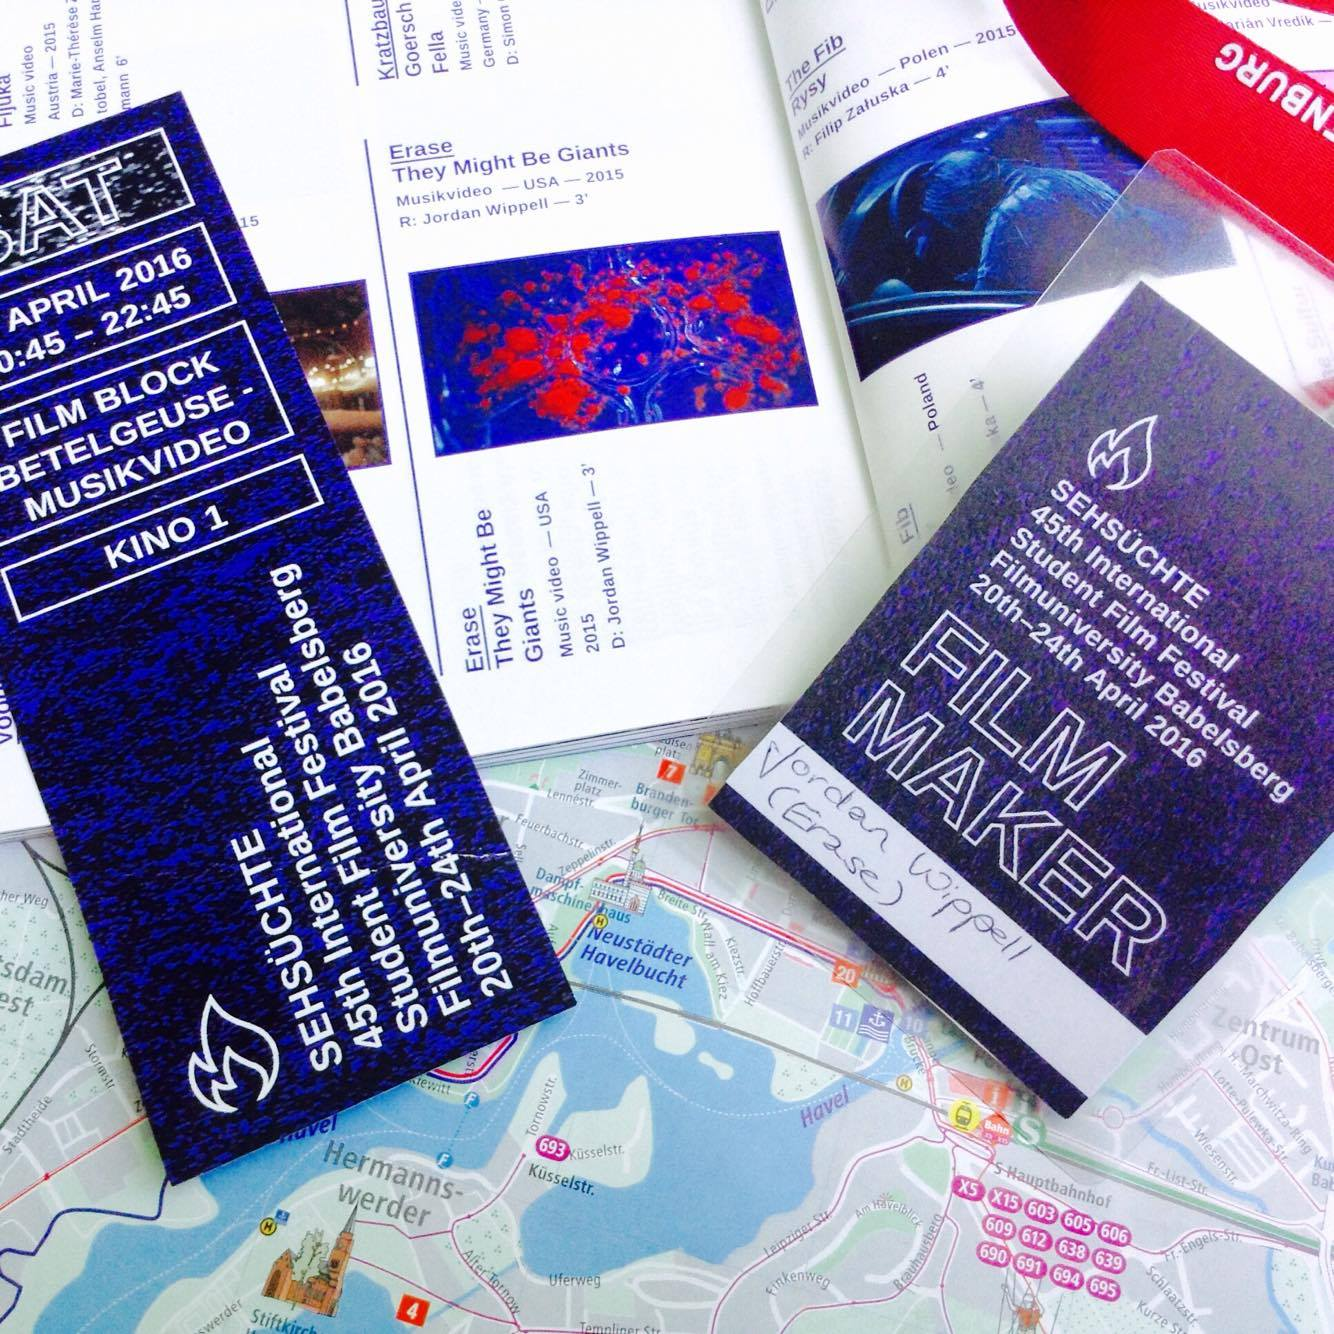 Filmmaker pass, tickets and map.